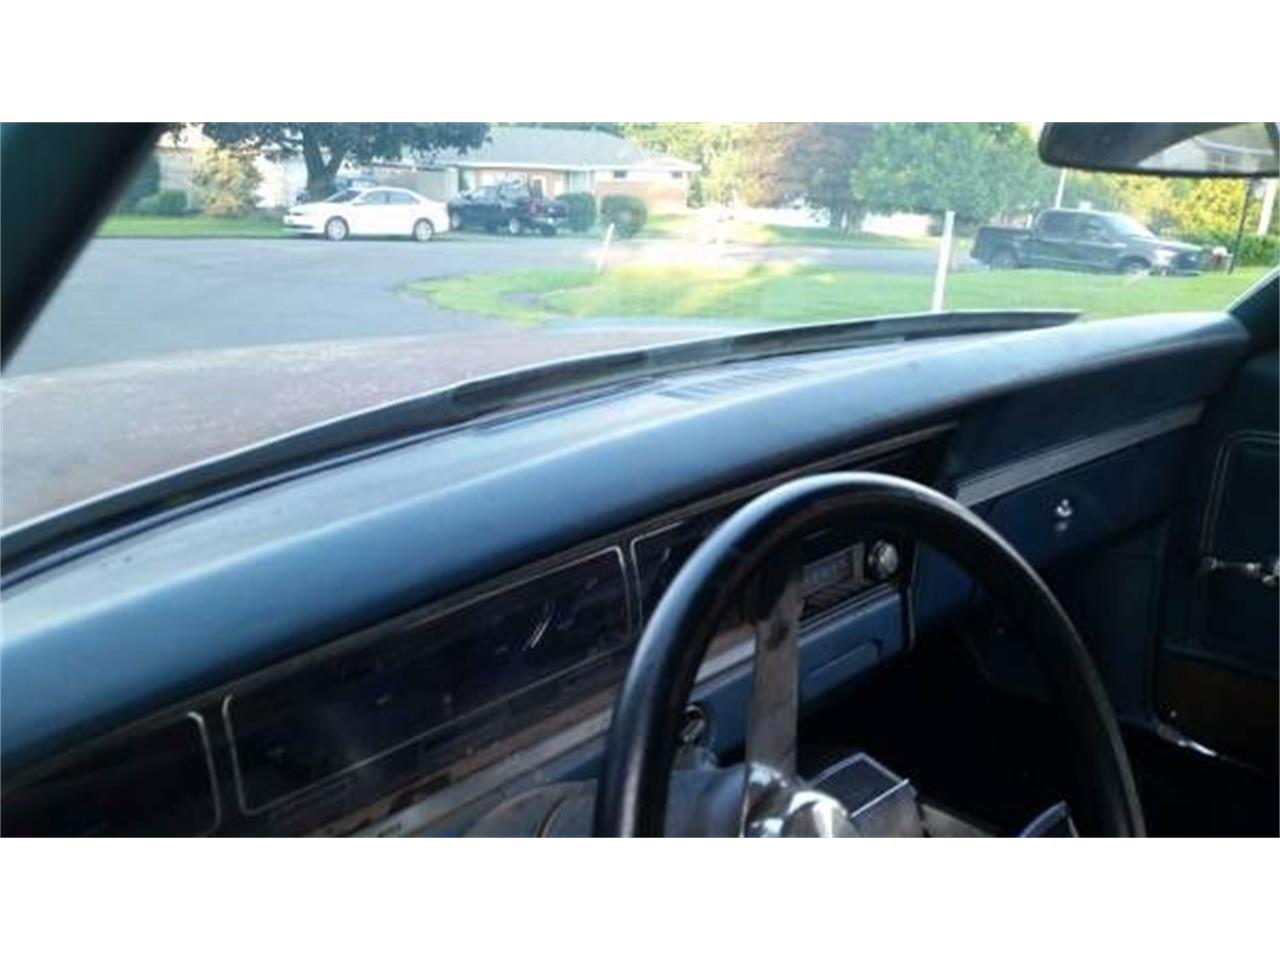 1968 Chevrolet Impala for sale in Cadillac, MI – photo 19